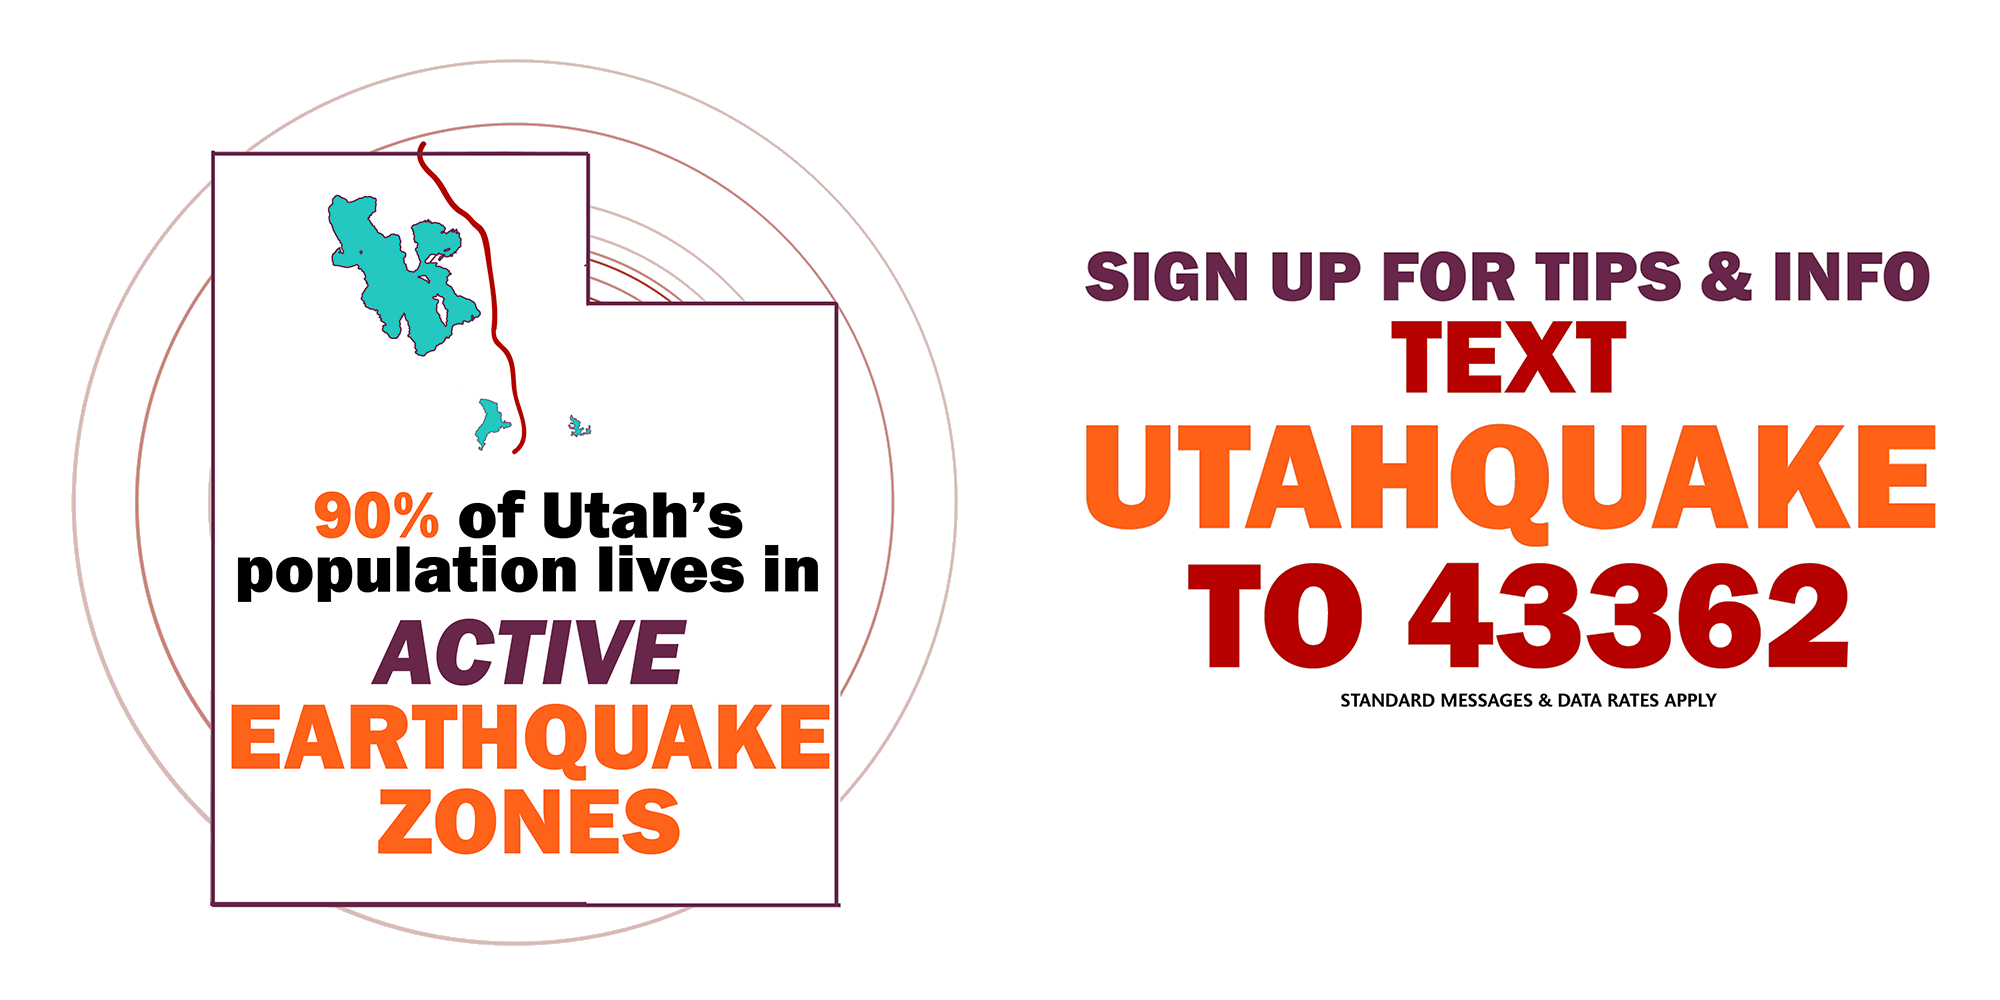 90% of Utahns live in active earthquake zones. Sign up for tips and information. Text UTAHQUAKE to 43362.